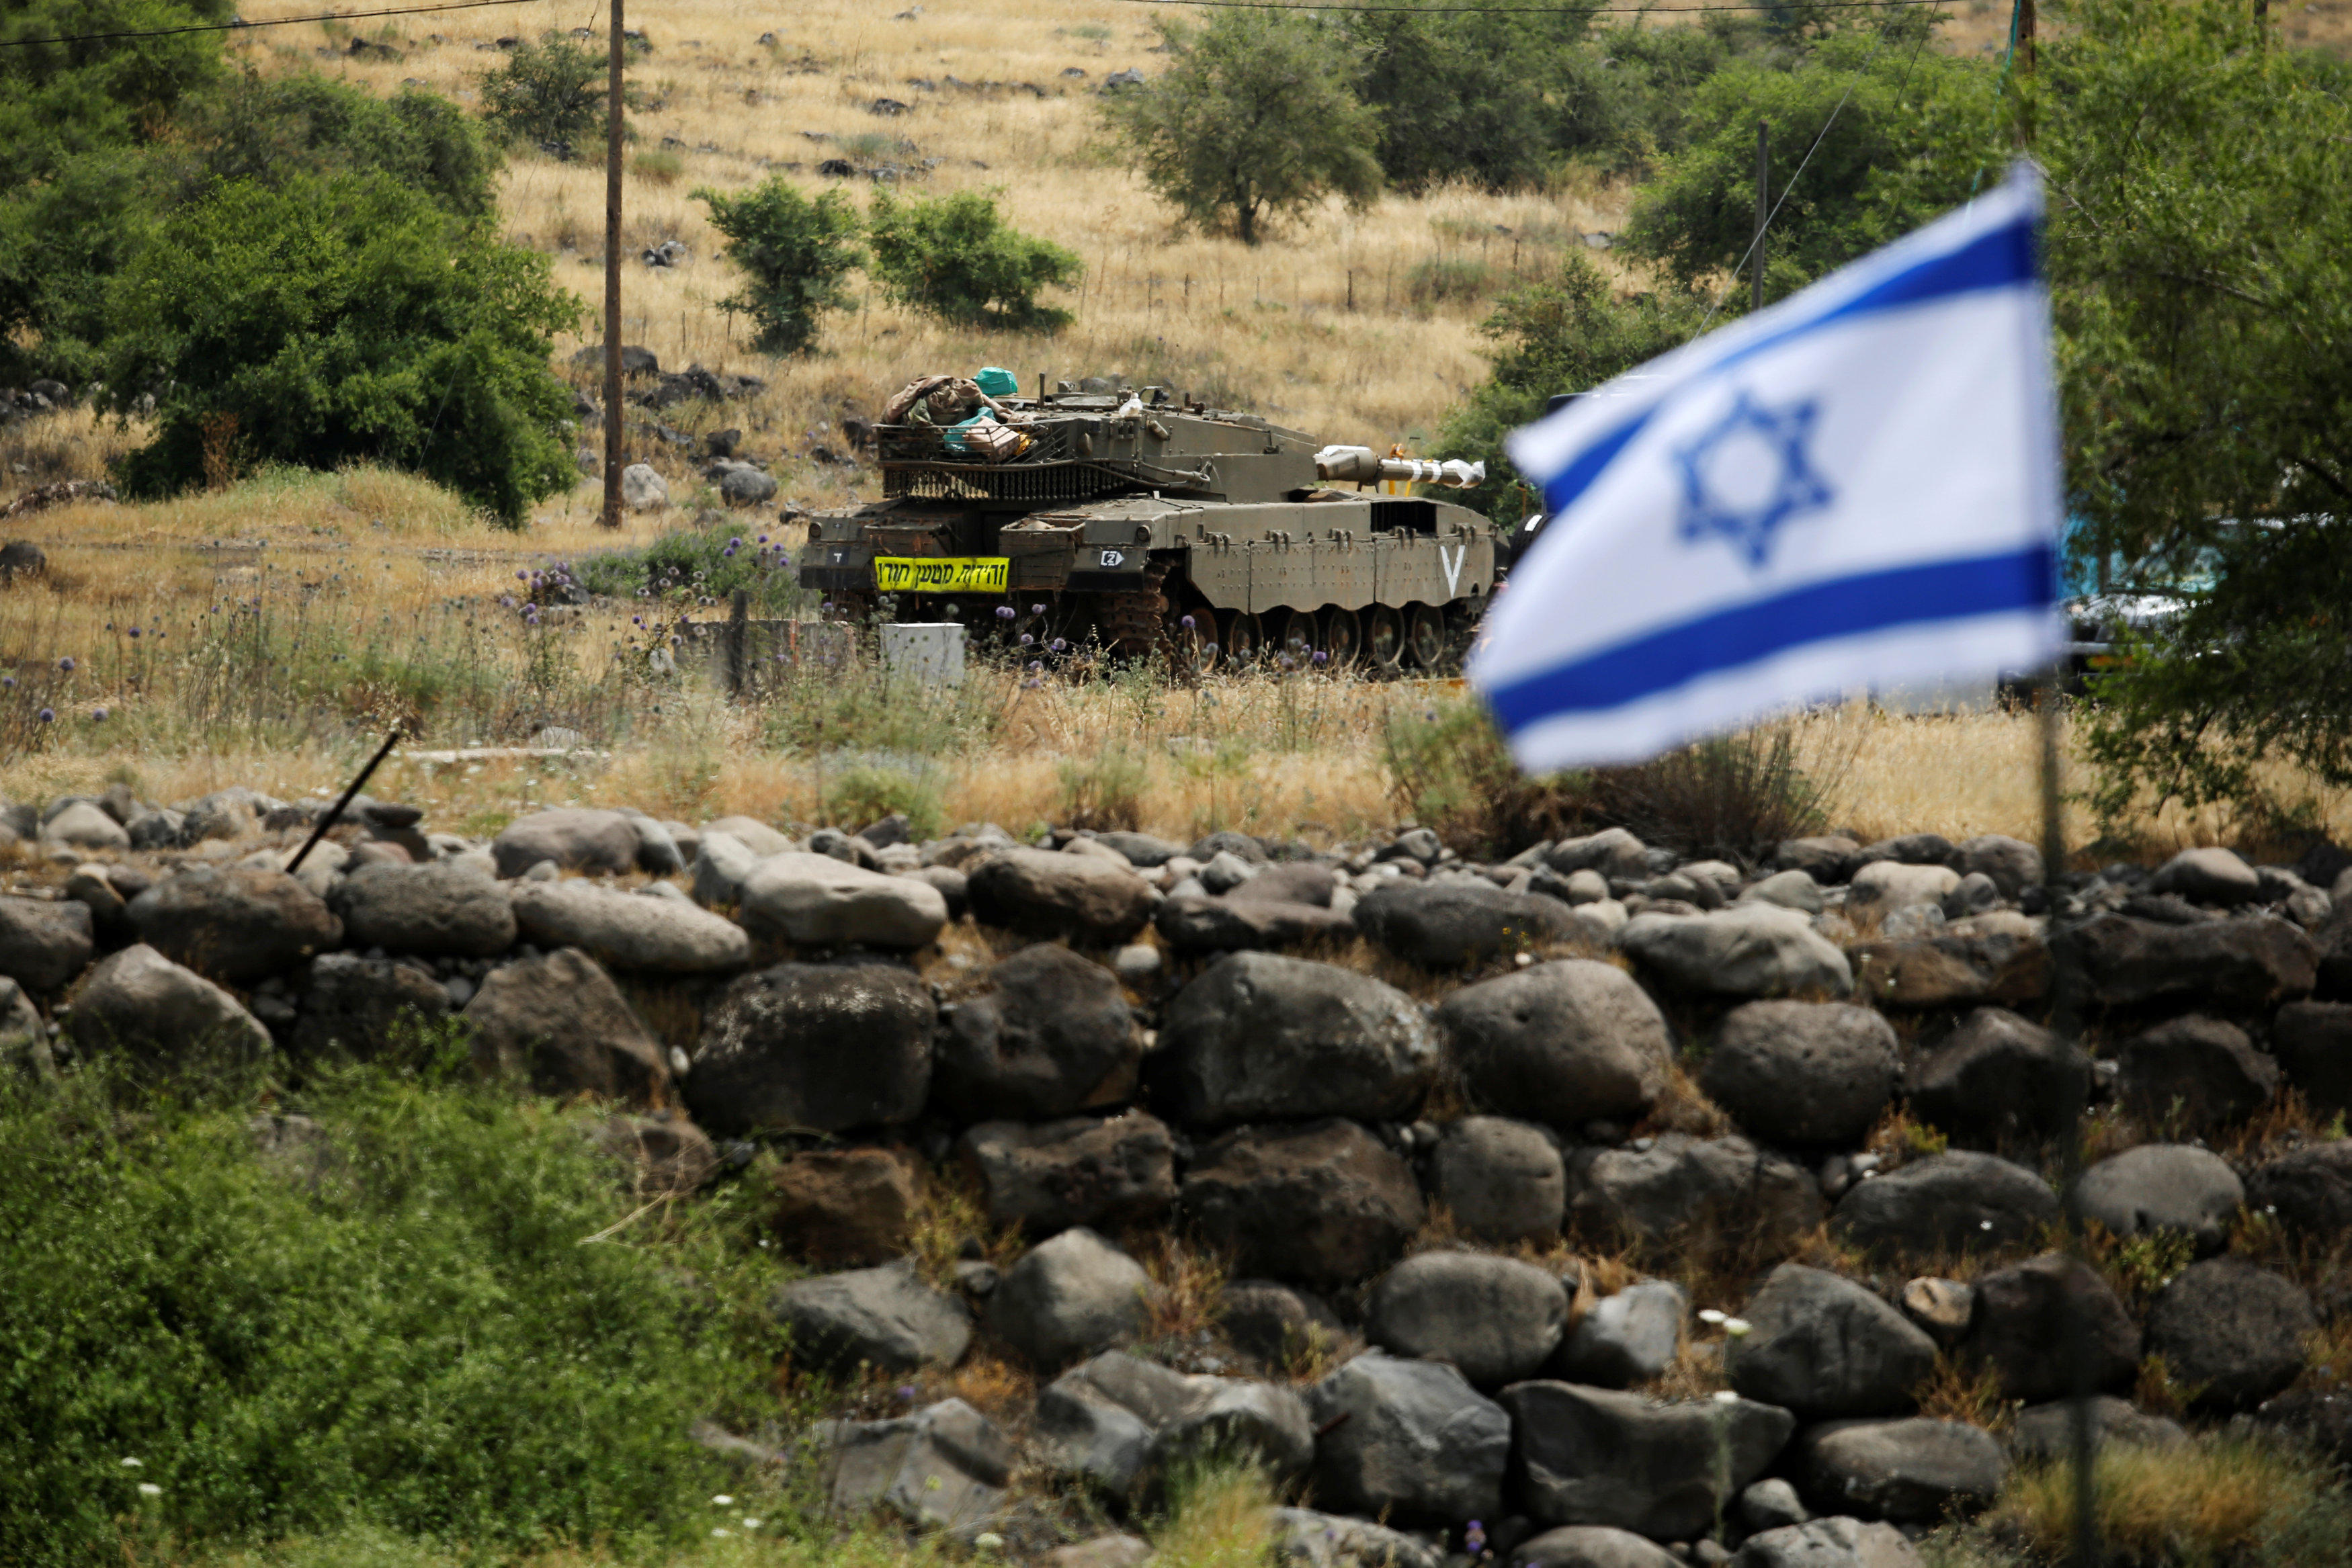 Israel says Iran fired rockets at military in the Golan